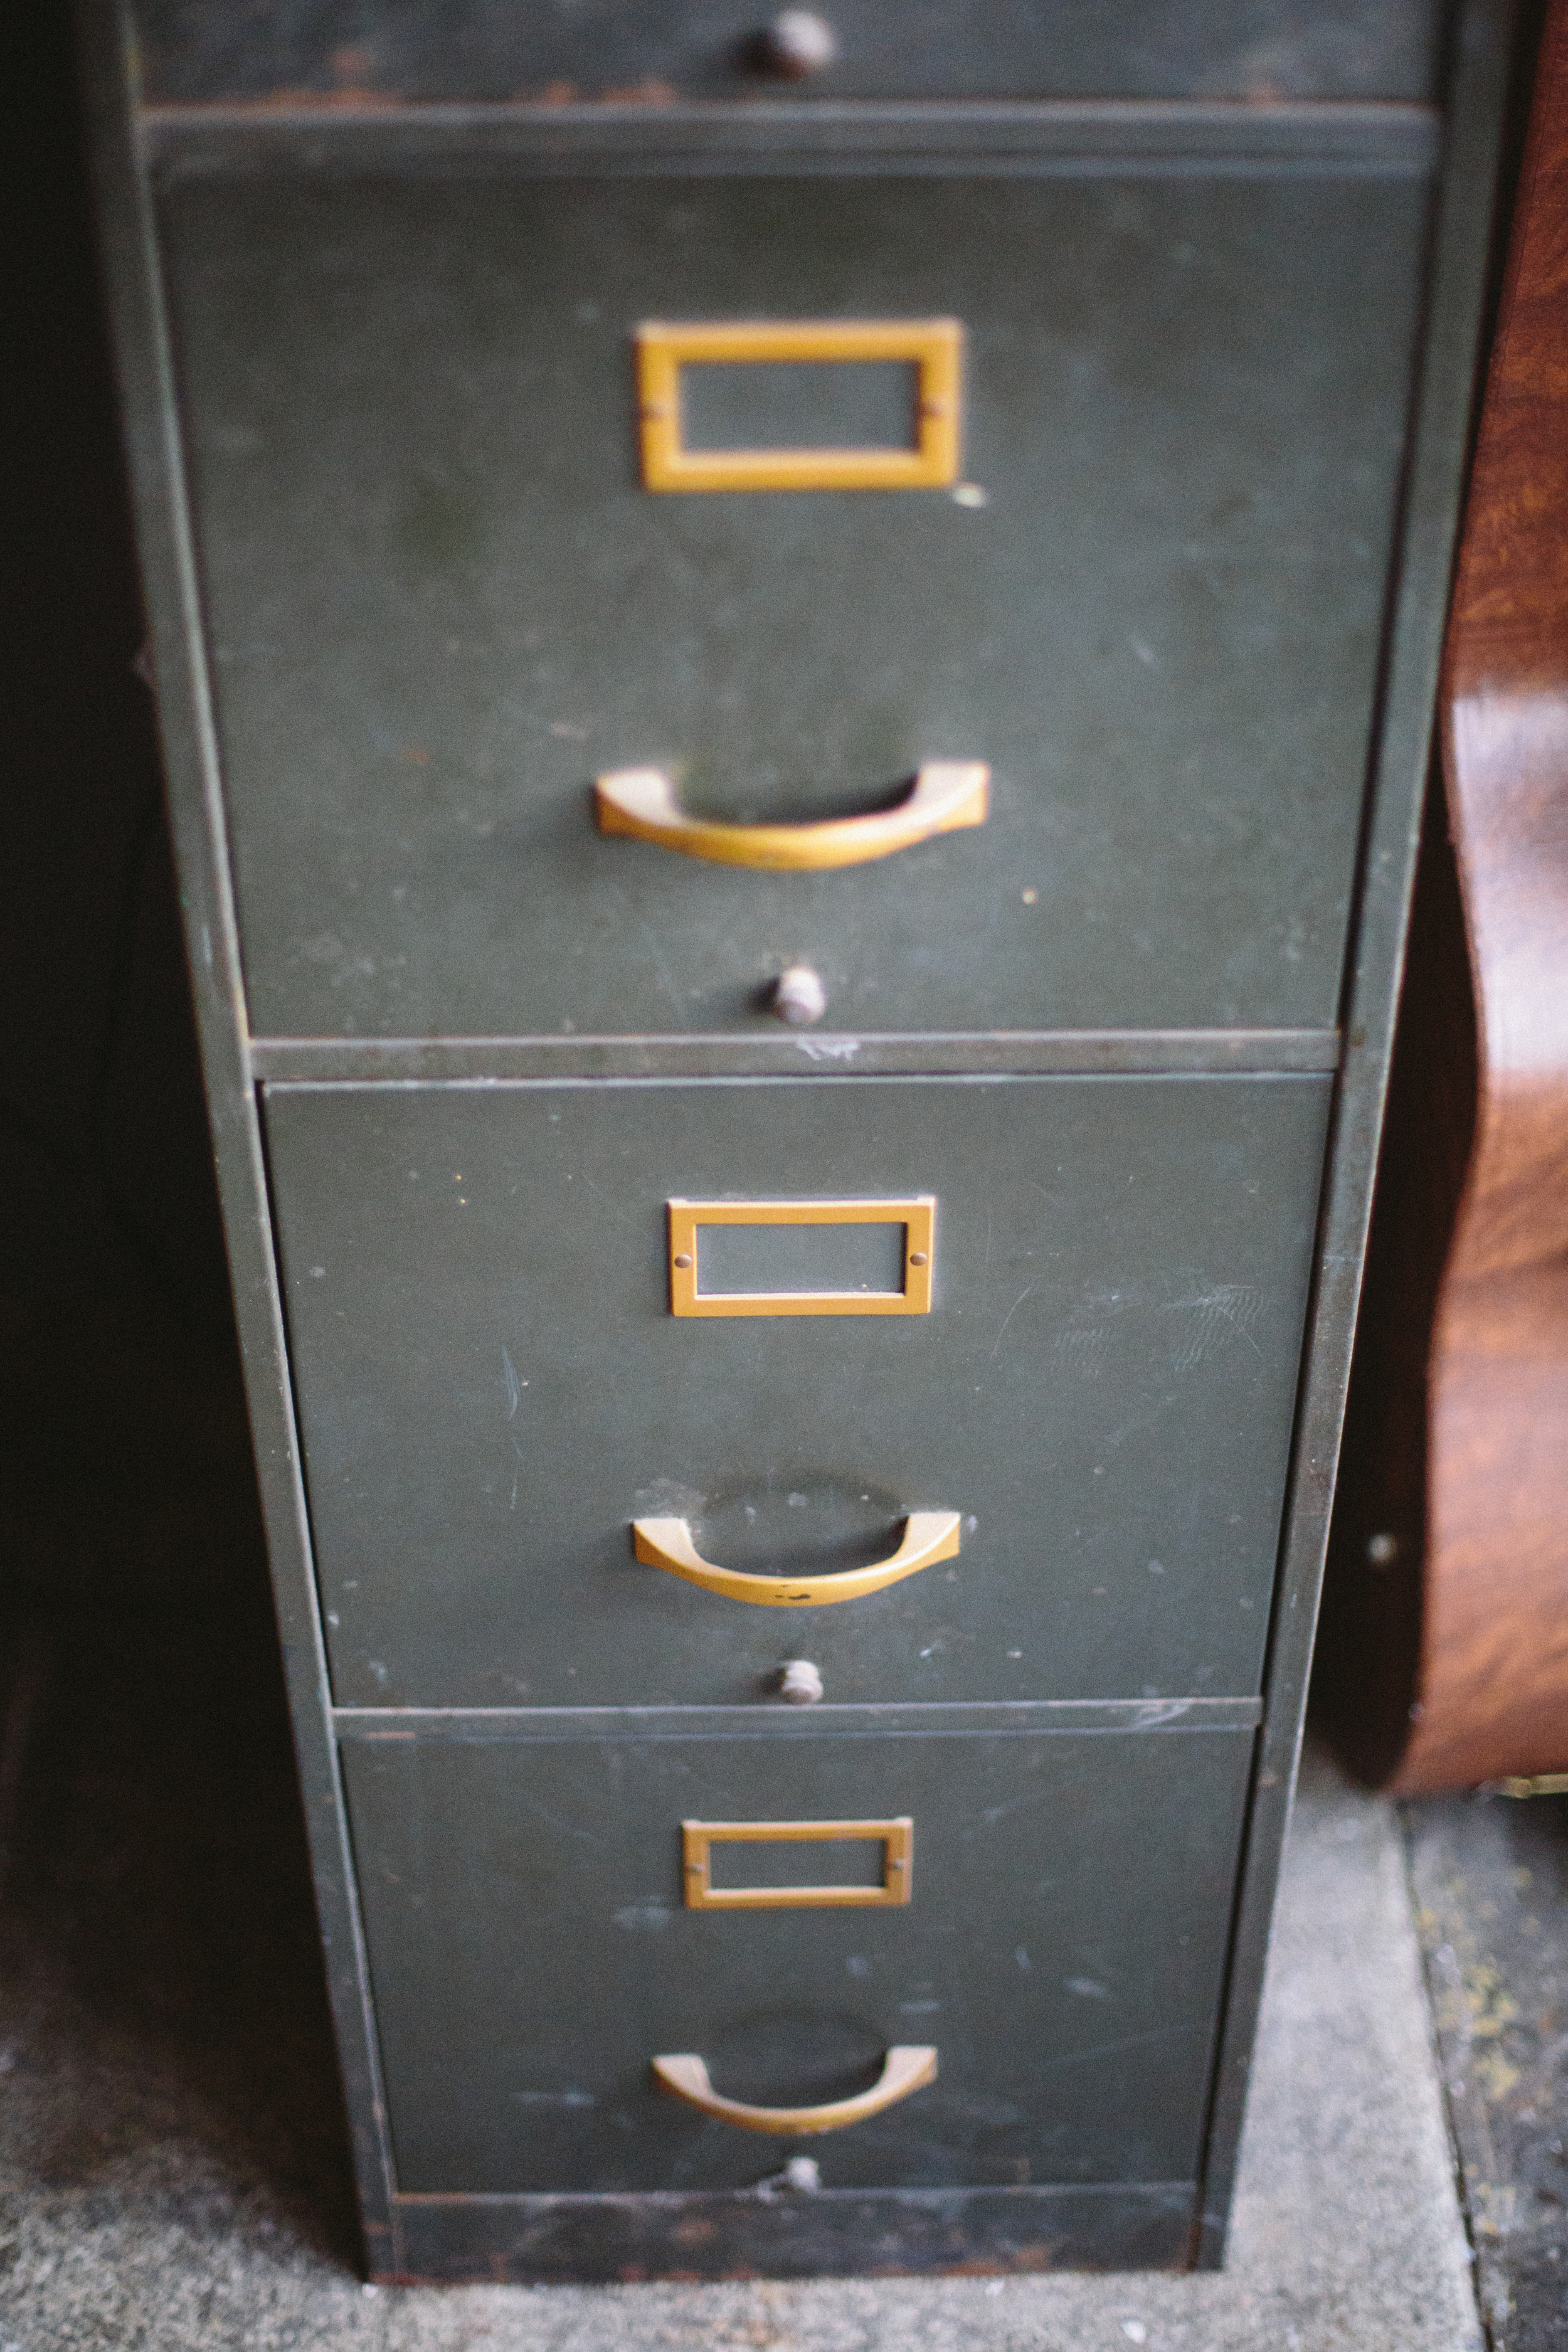 Behold the glorious filing cabinet:where it all starts and ends.